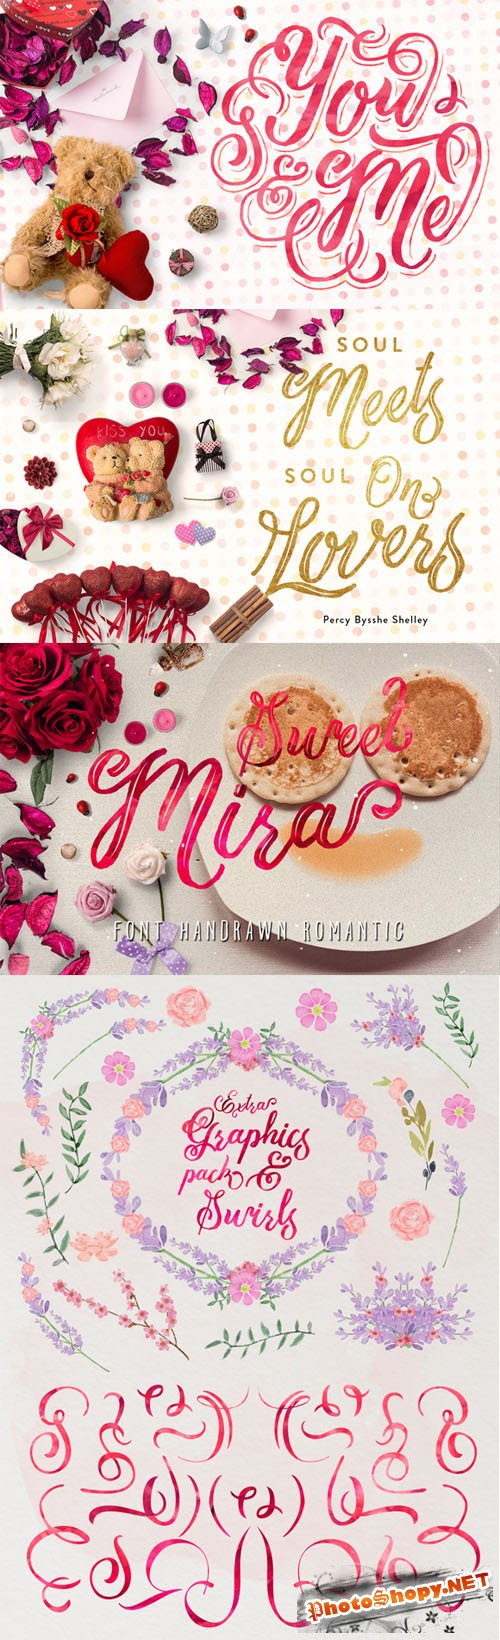 Mira & graphic watercolor & swirls - Creativemarket 167962